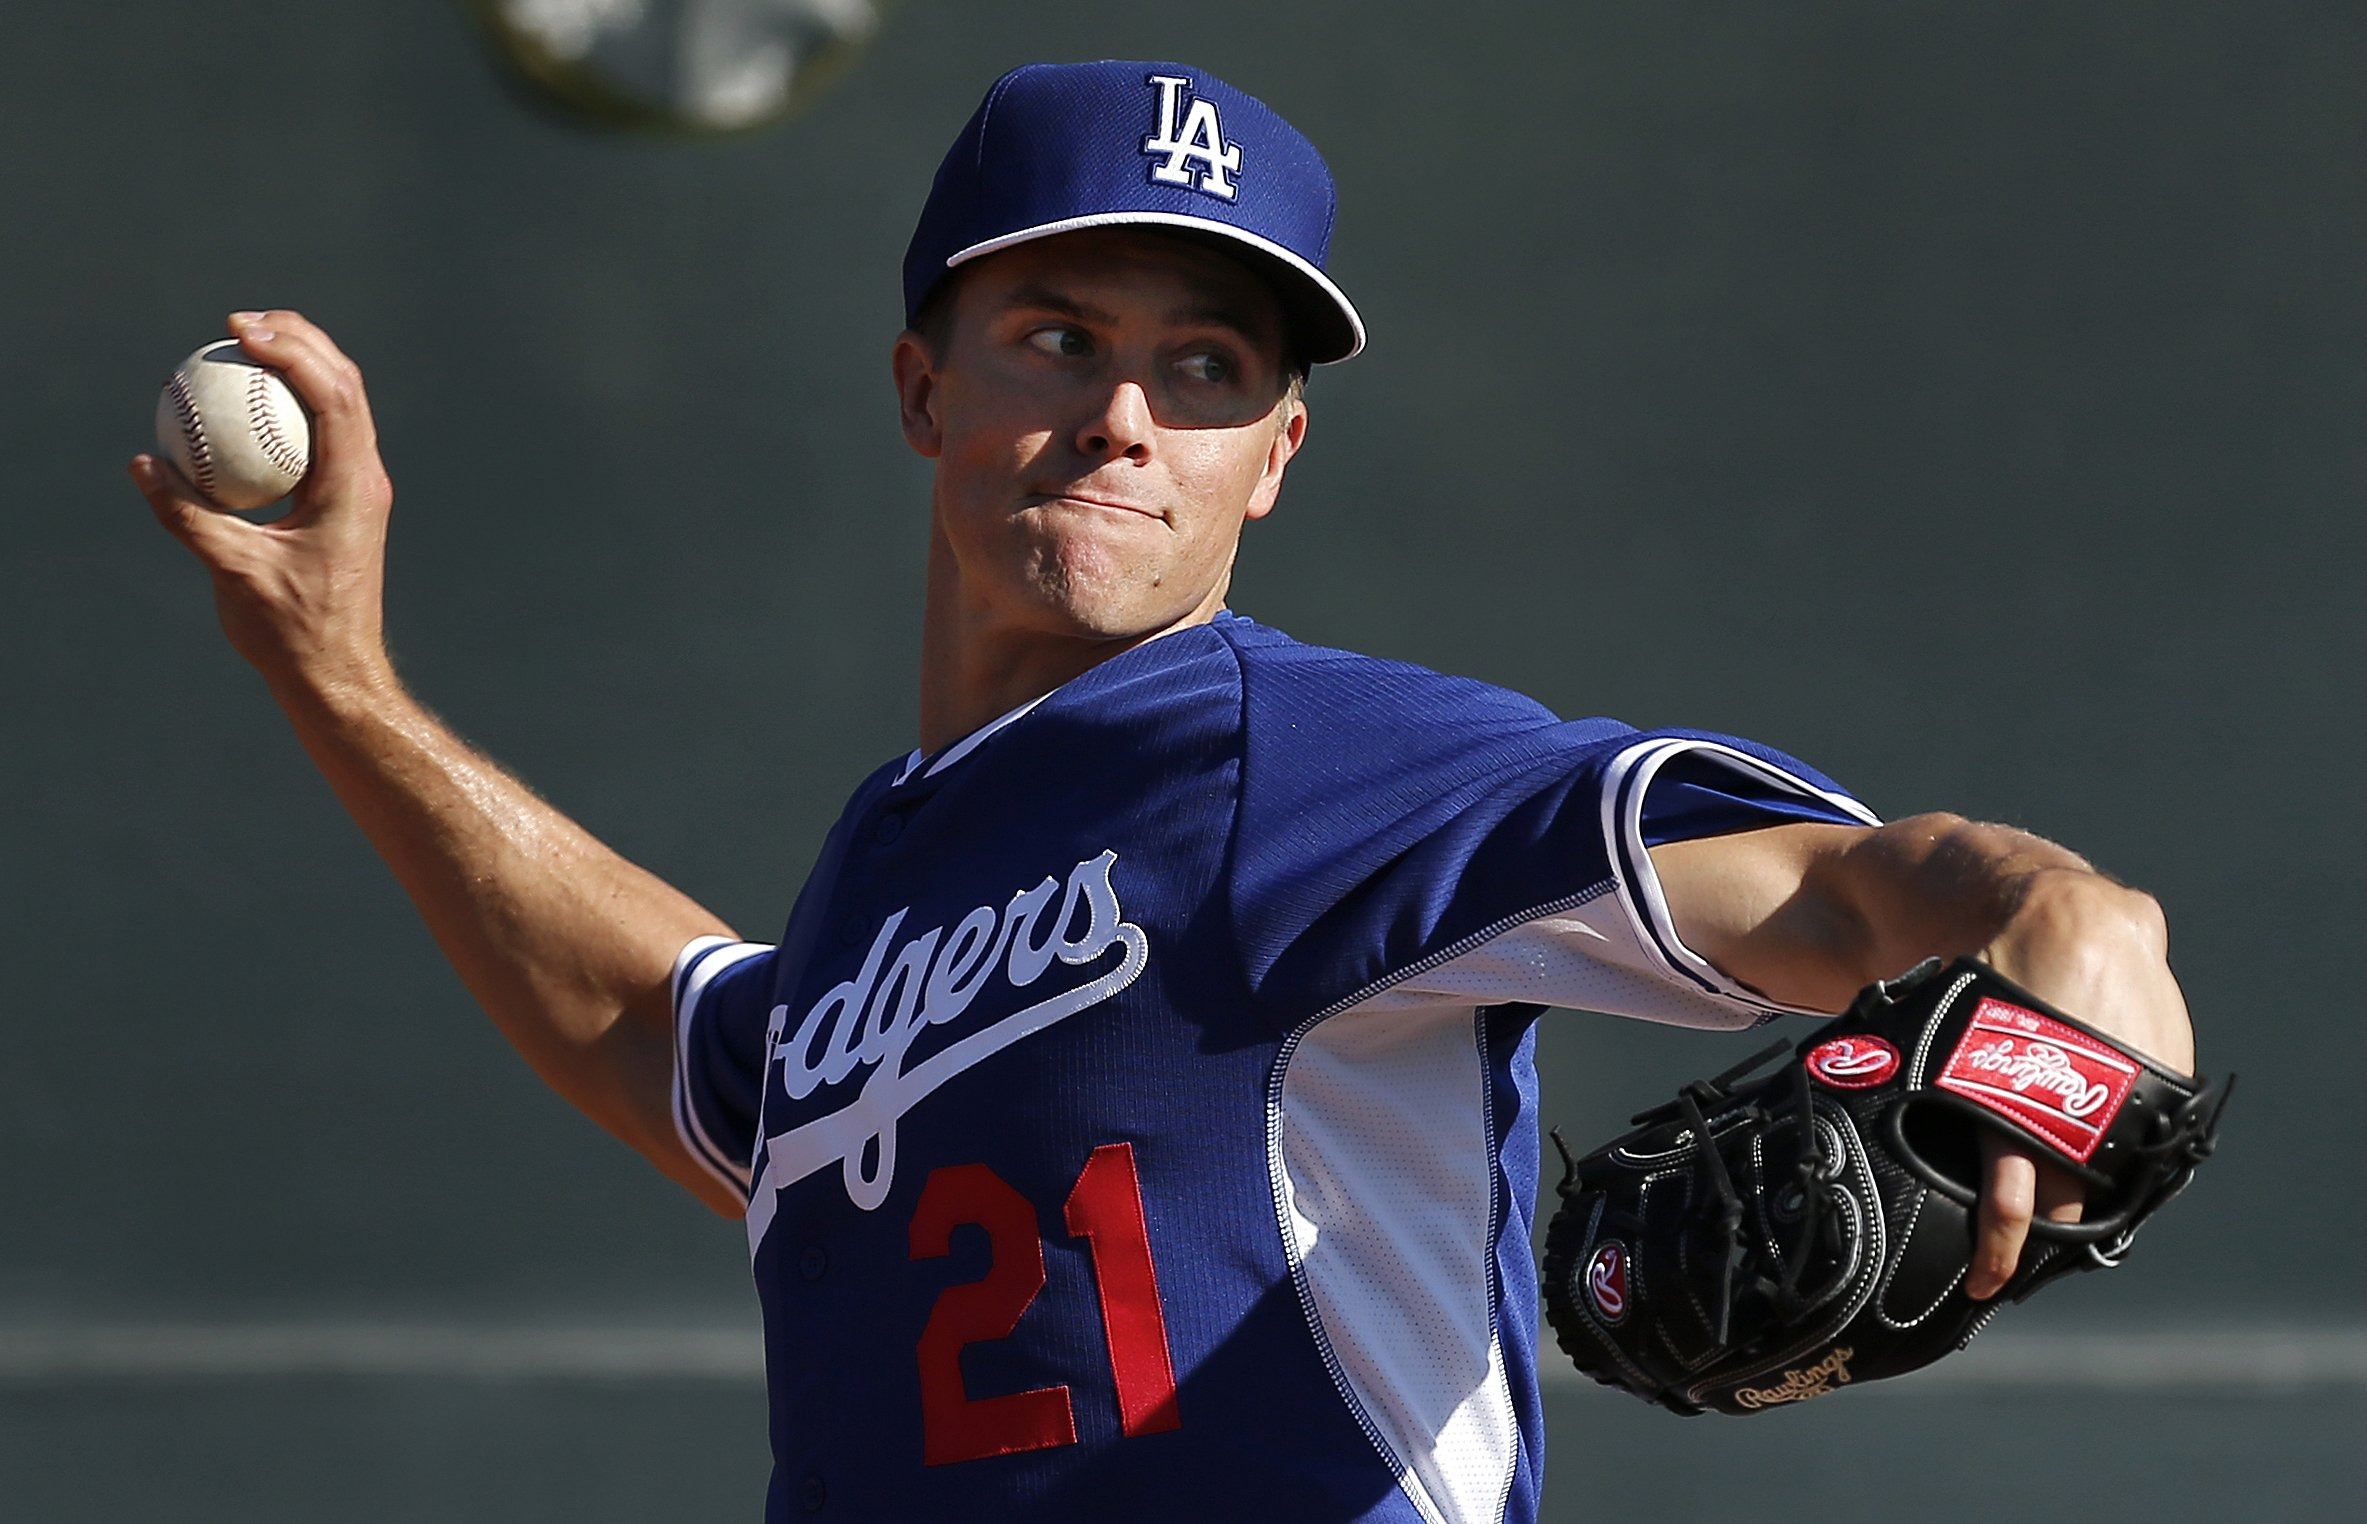 Los Angeles Dodgers pitcher Zack Greinke throws during spring training baseball practice in Glendale, Ariz., Feb. 10, 2014.